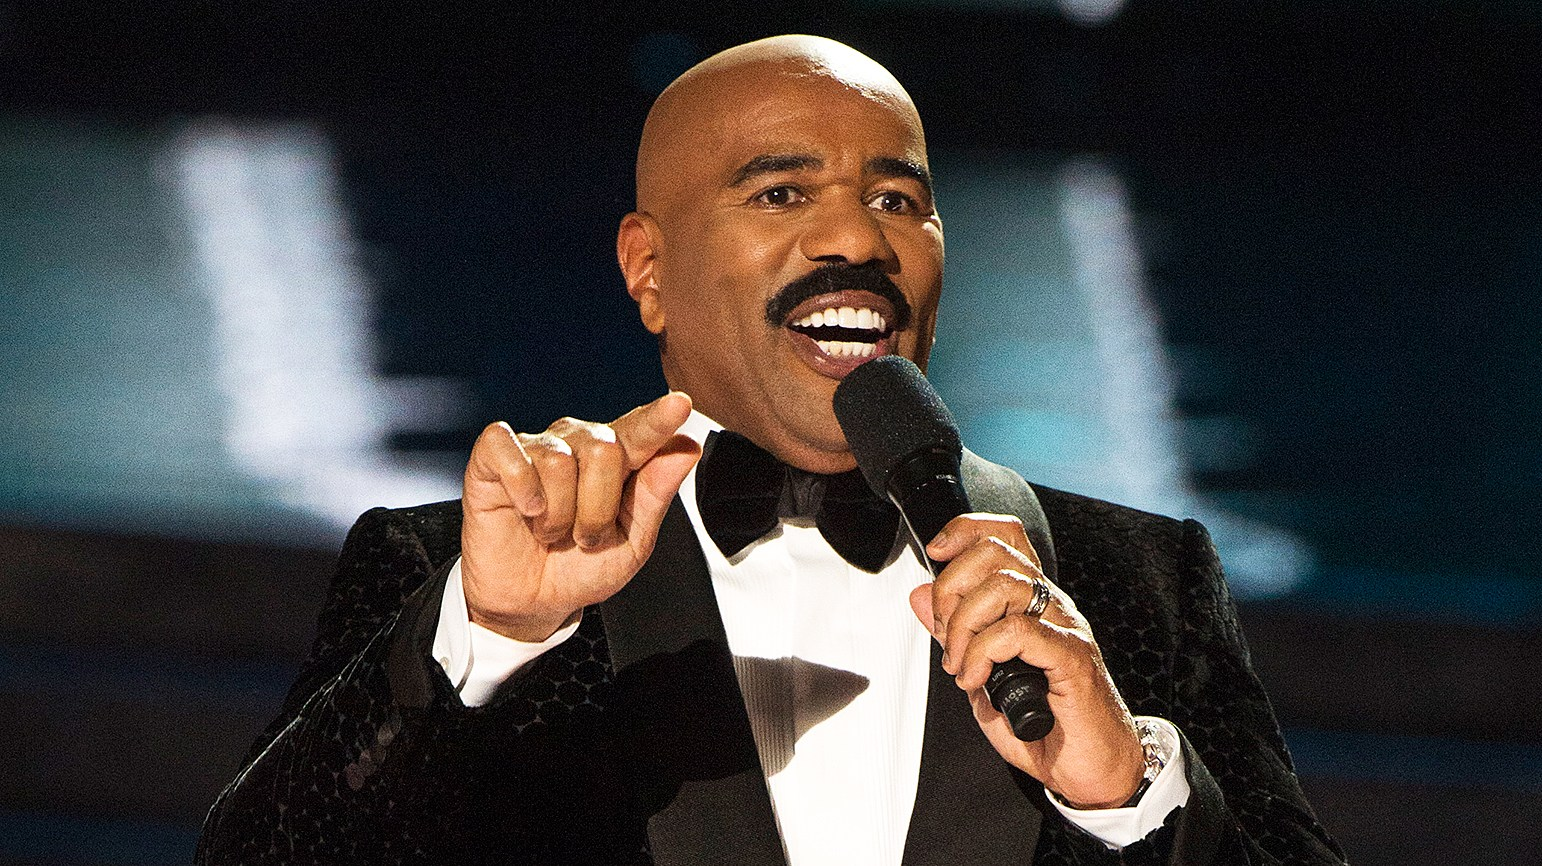 Steve Harvey hosted Miss Universe 2015